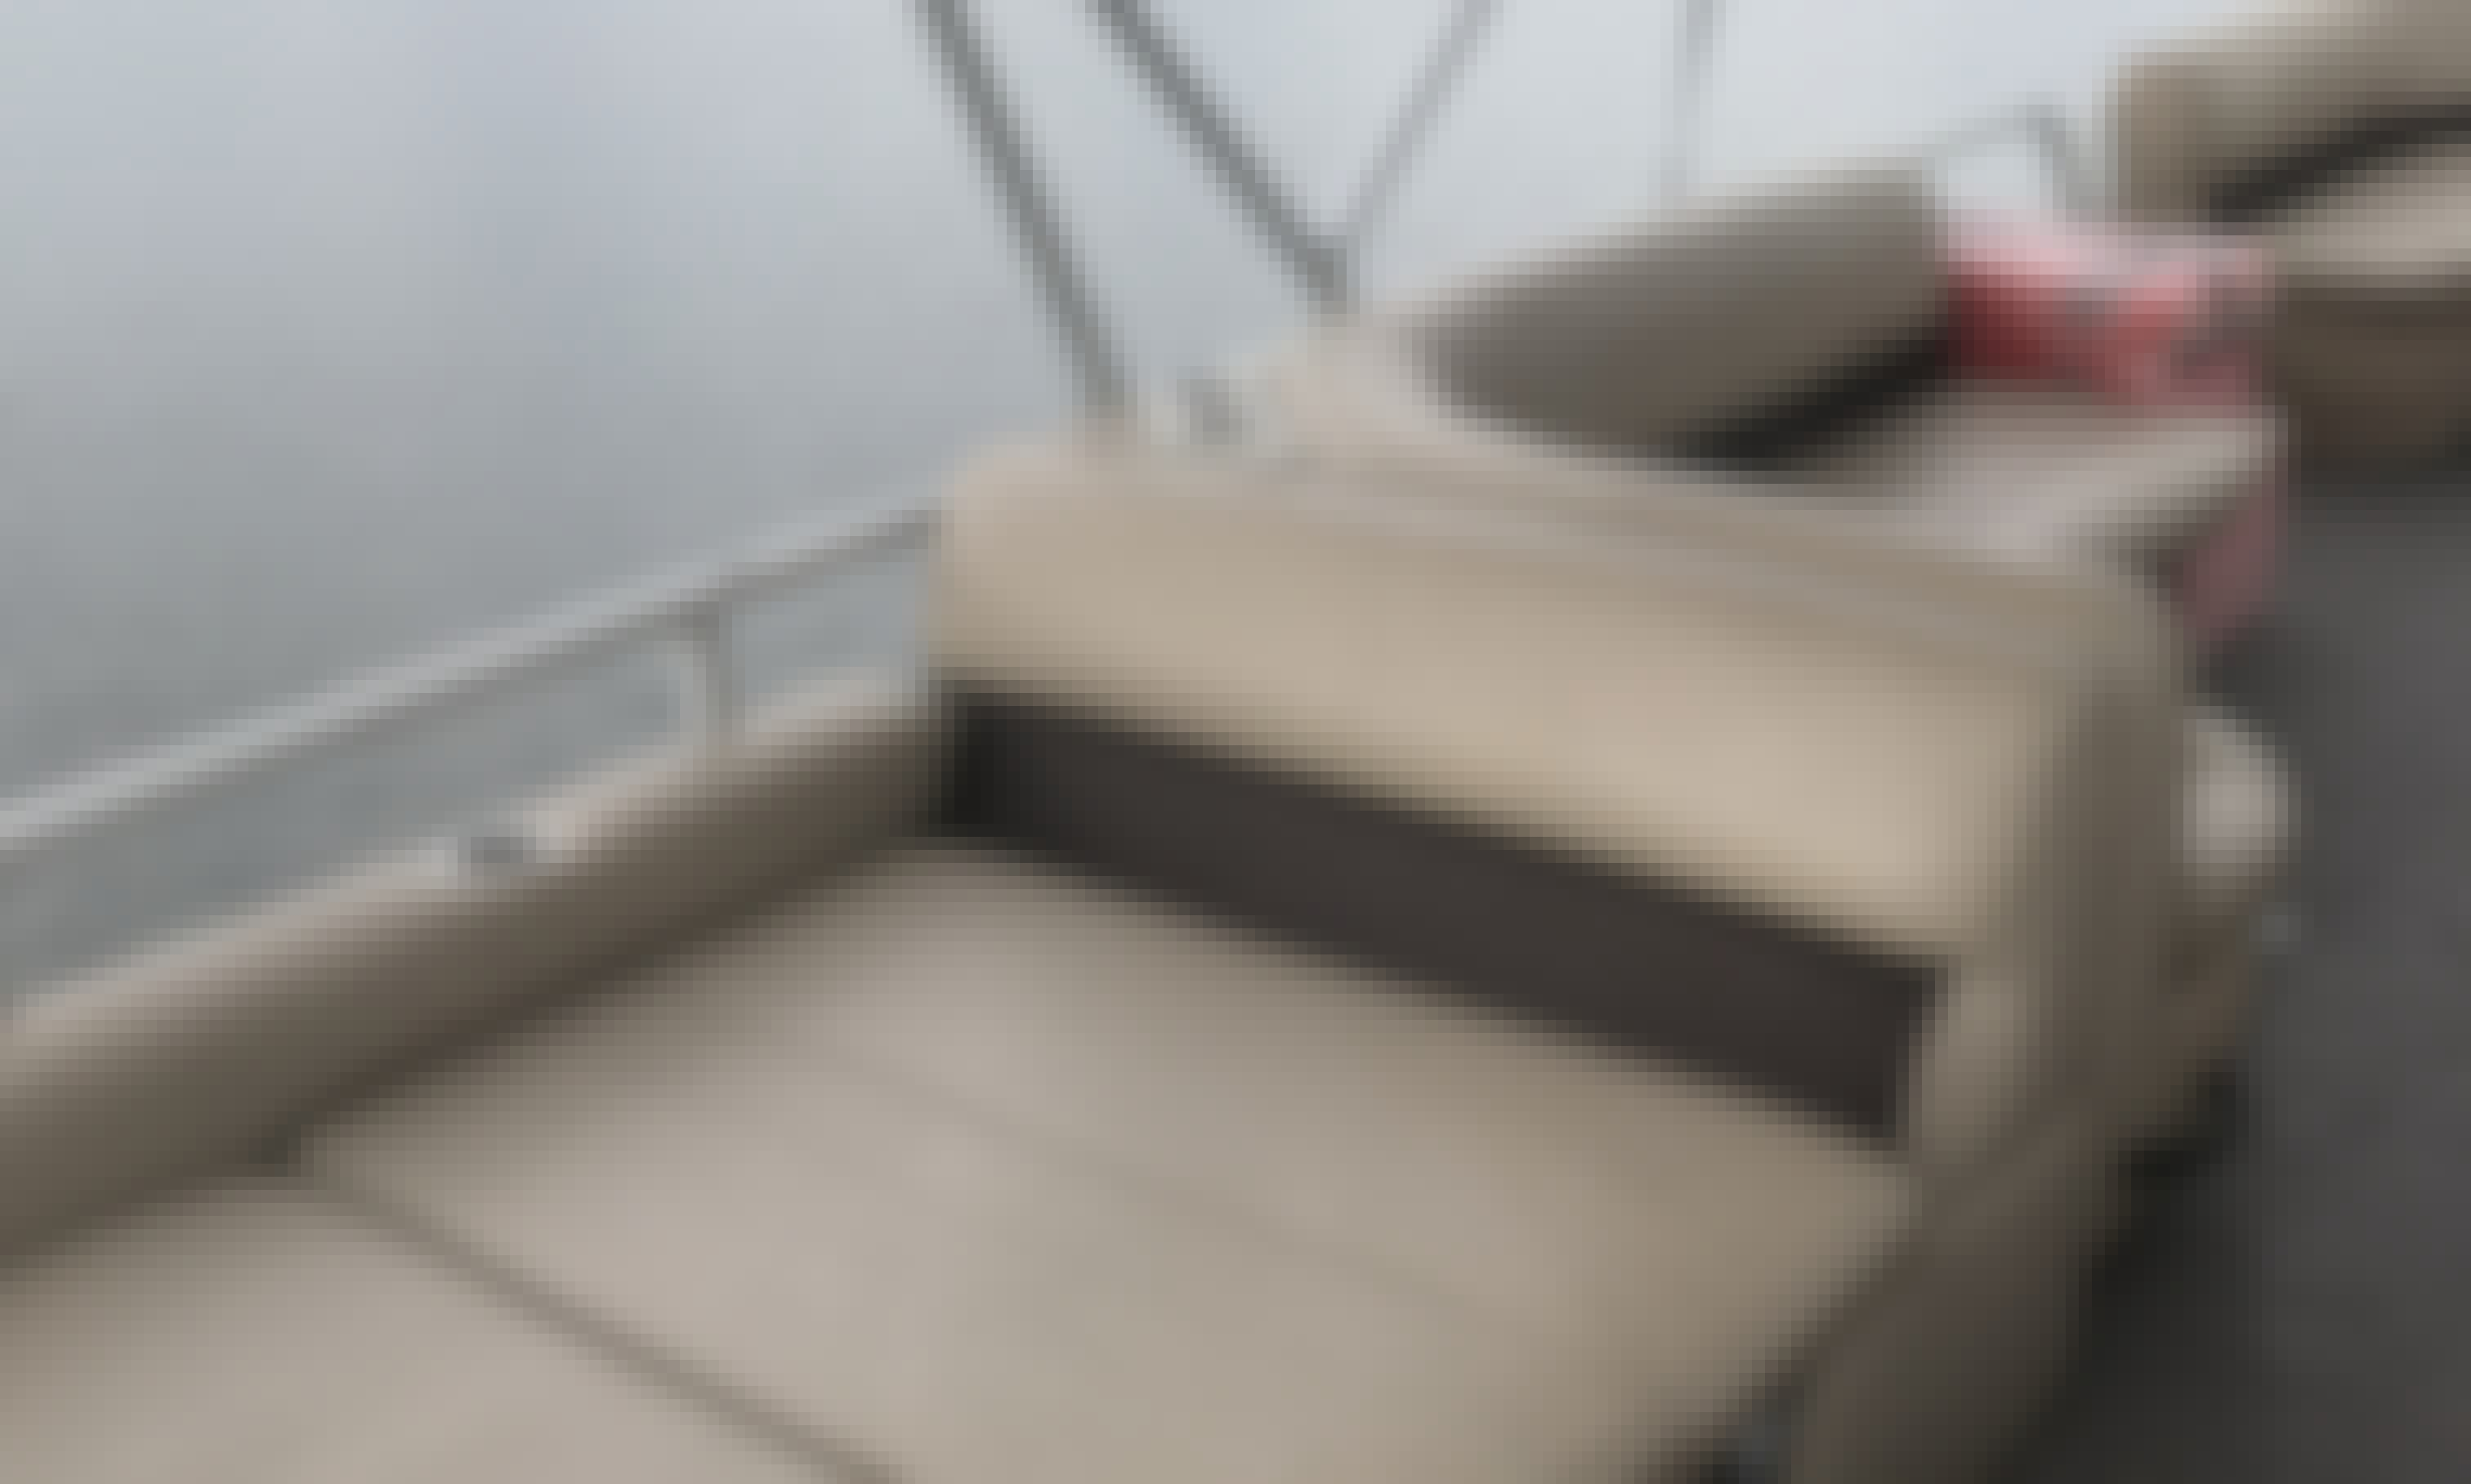 Rent a 22' 115HP Luxury Pontoon boat and explore lakes in Green Bay